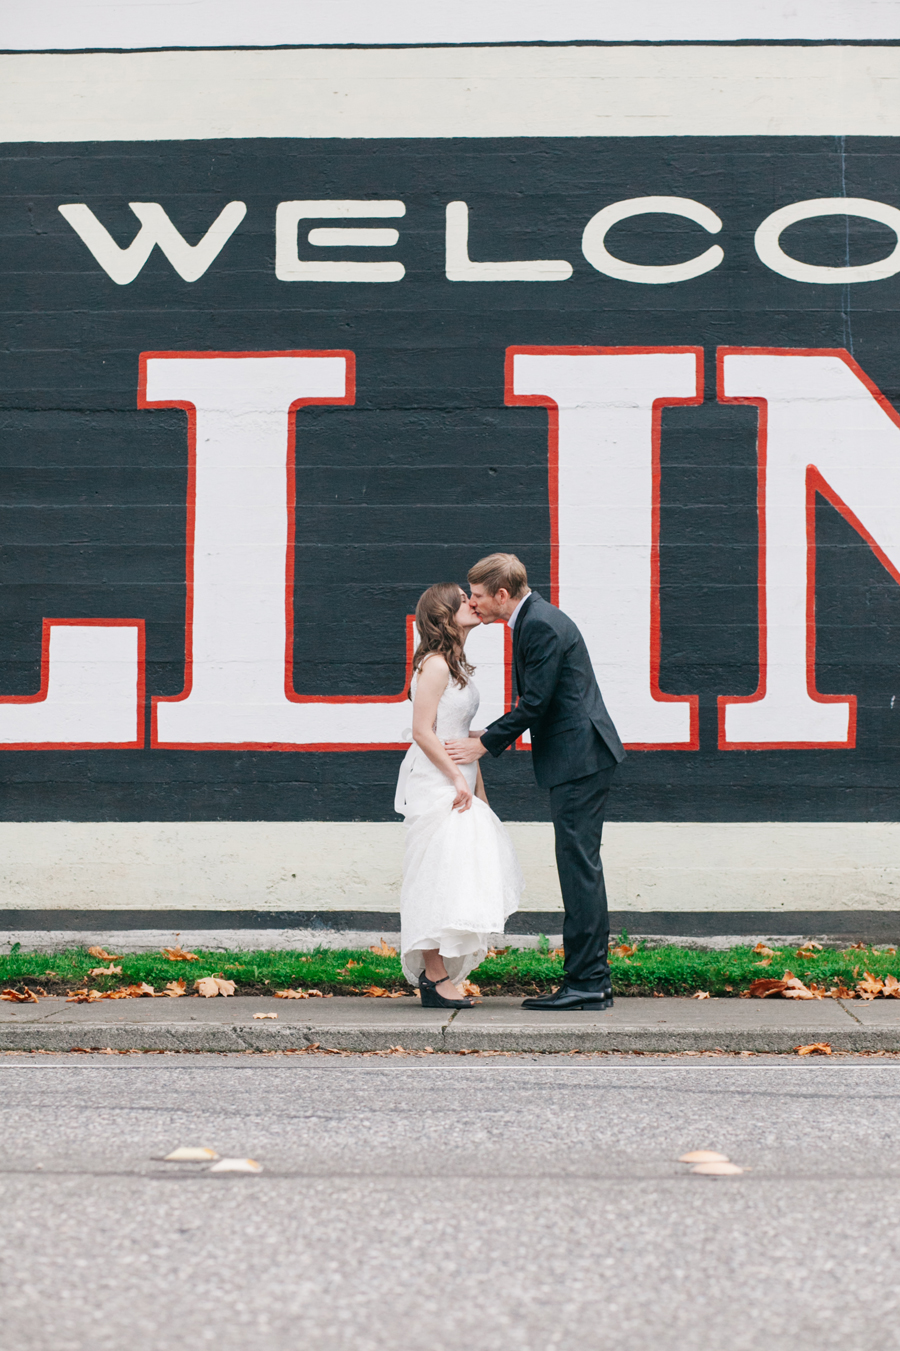 012-bellingham-fairhaven-wedding-photographer-bellingham-ferry-terminal-katheryn-moran-photography.jpg